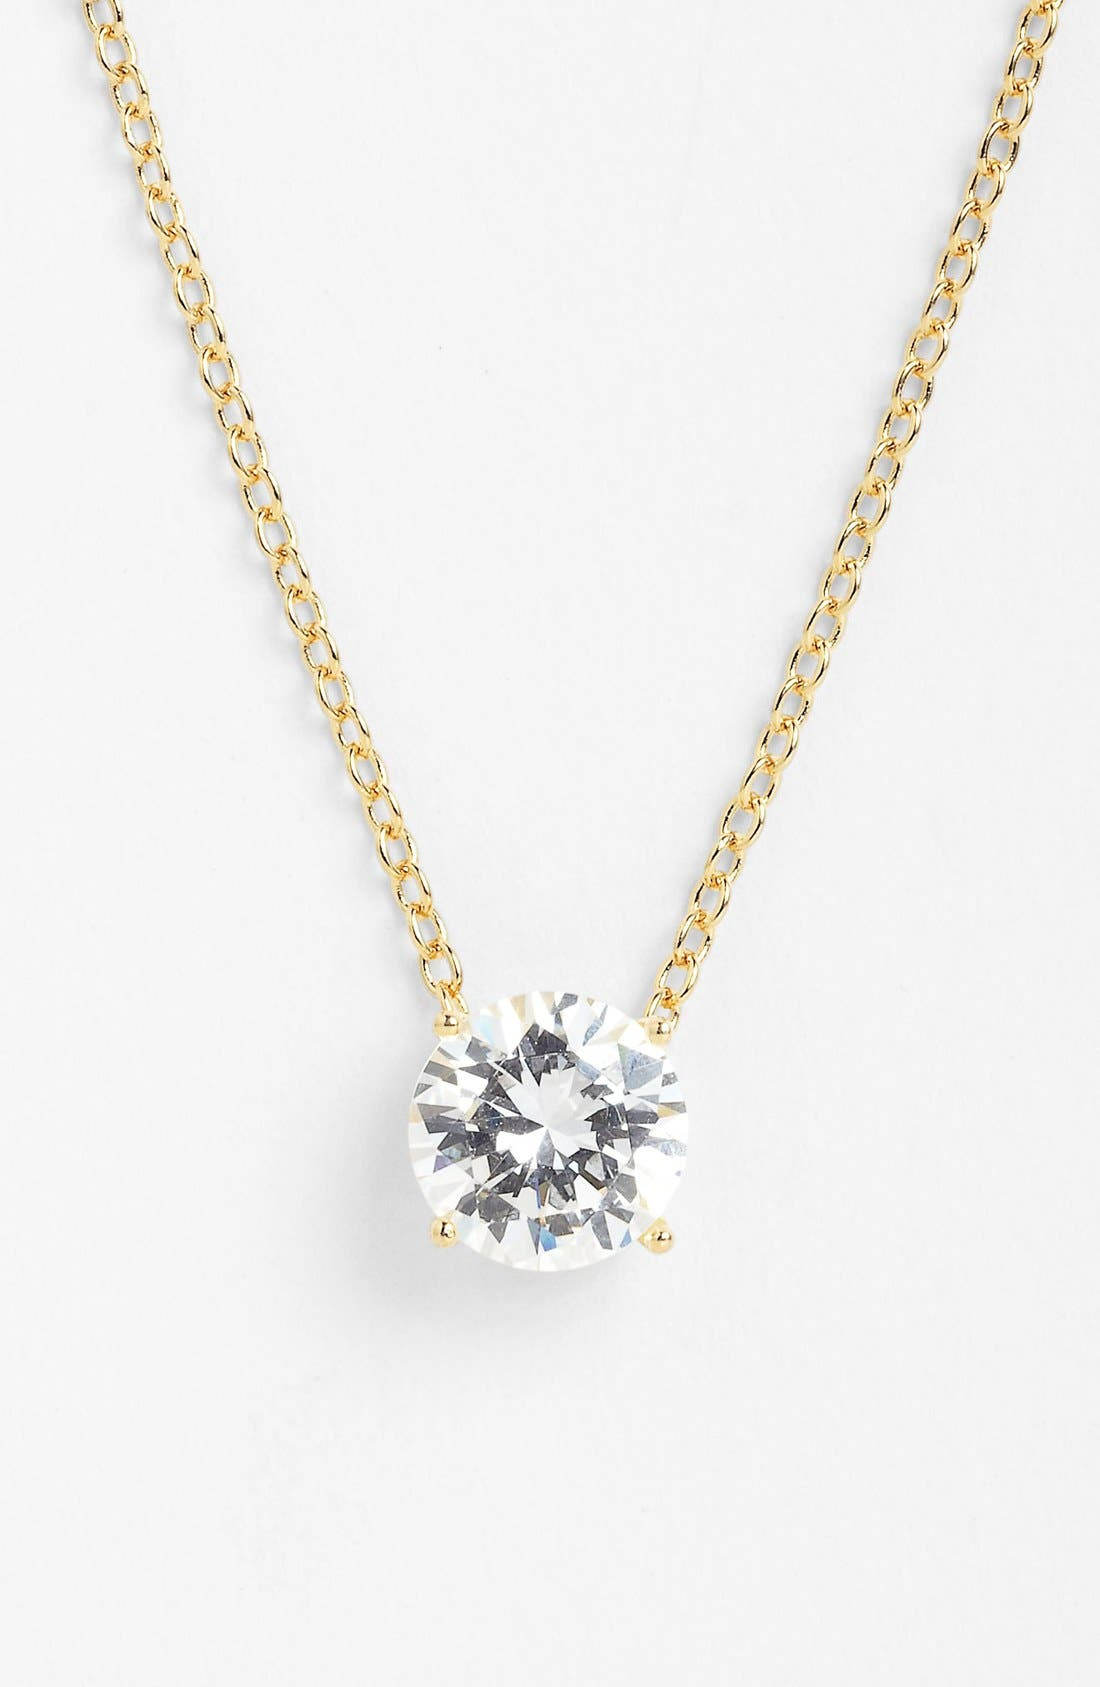 Main Image - Nordstrom 1ct Cubic Zirconia Pendant Necklace